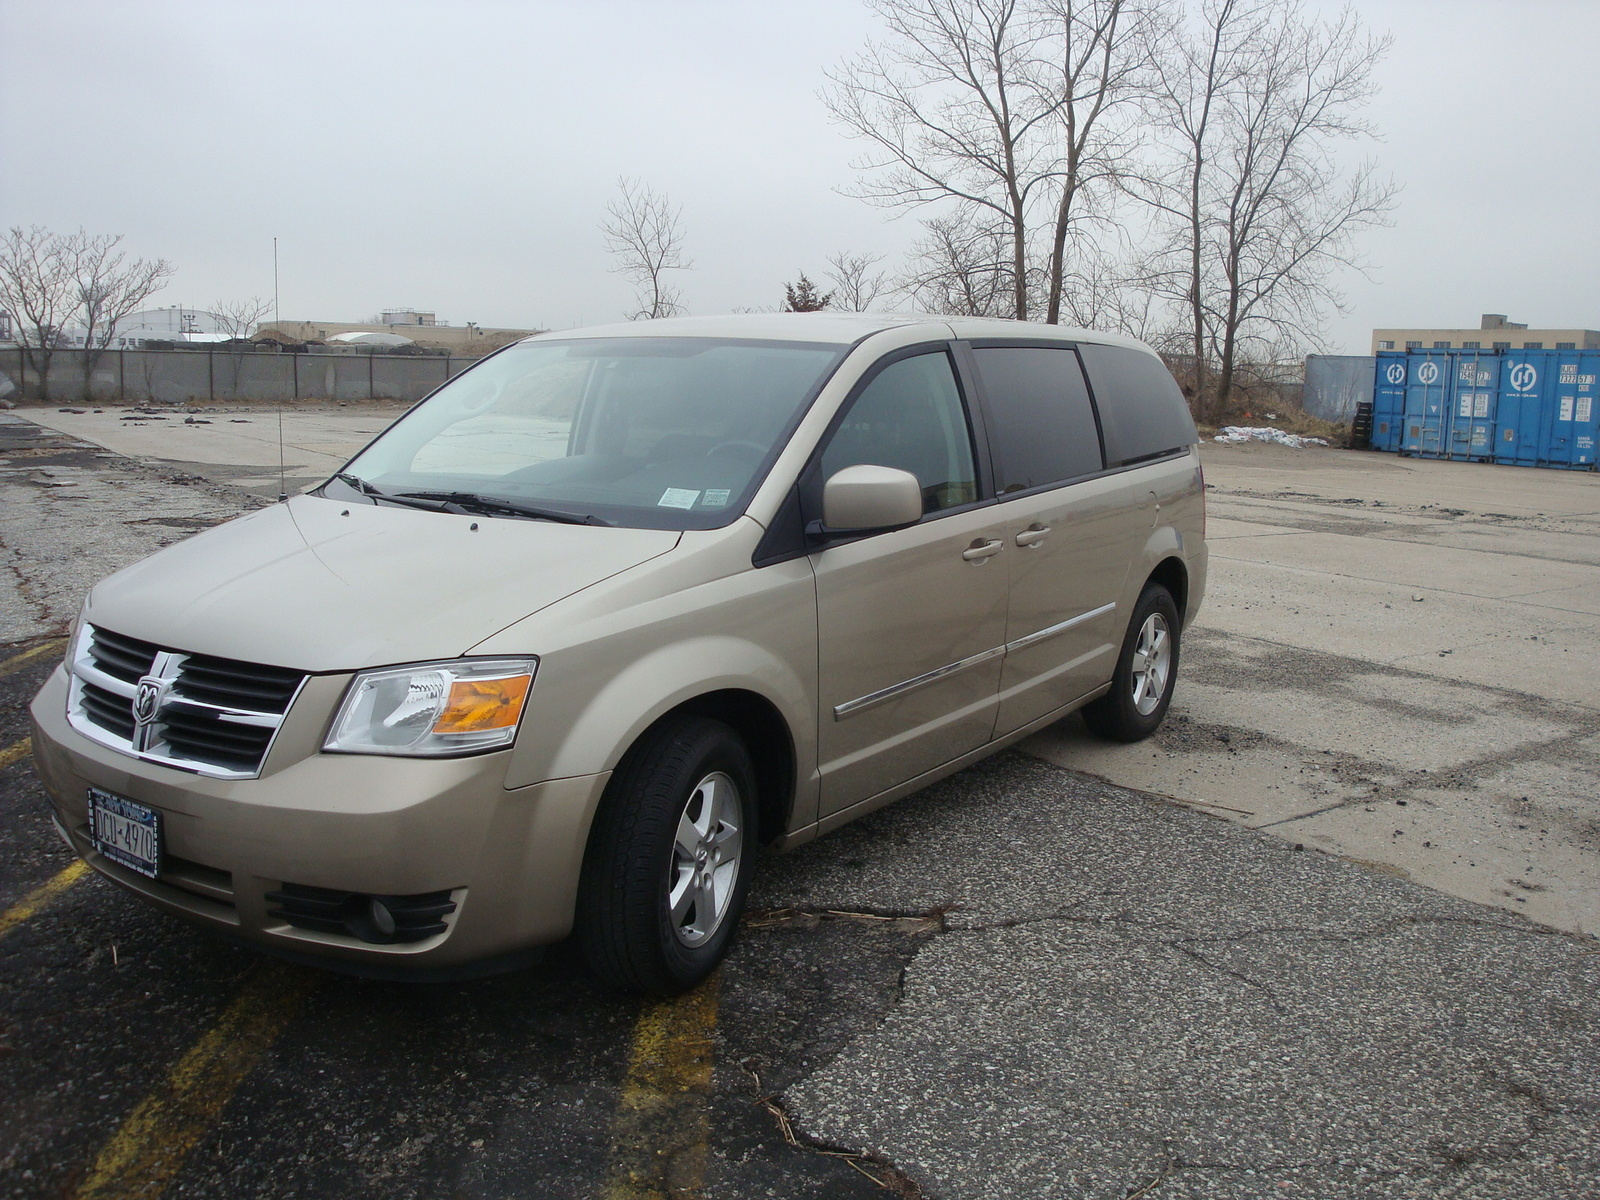 2008 dodge grand caravan exterior pictures cargurus. Cars Review. Best American Auto & Cars Review